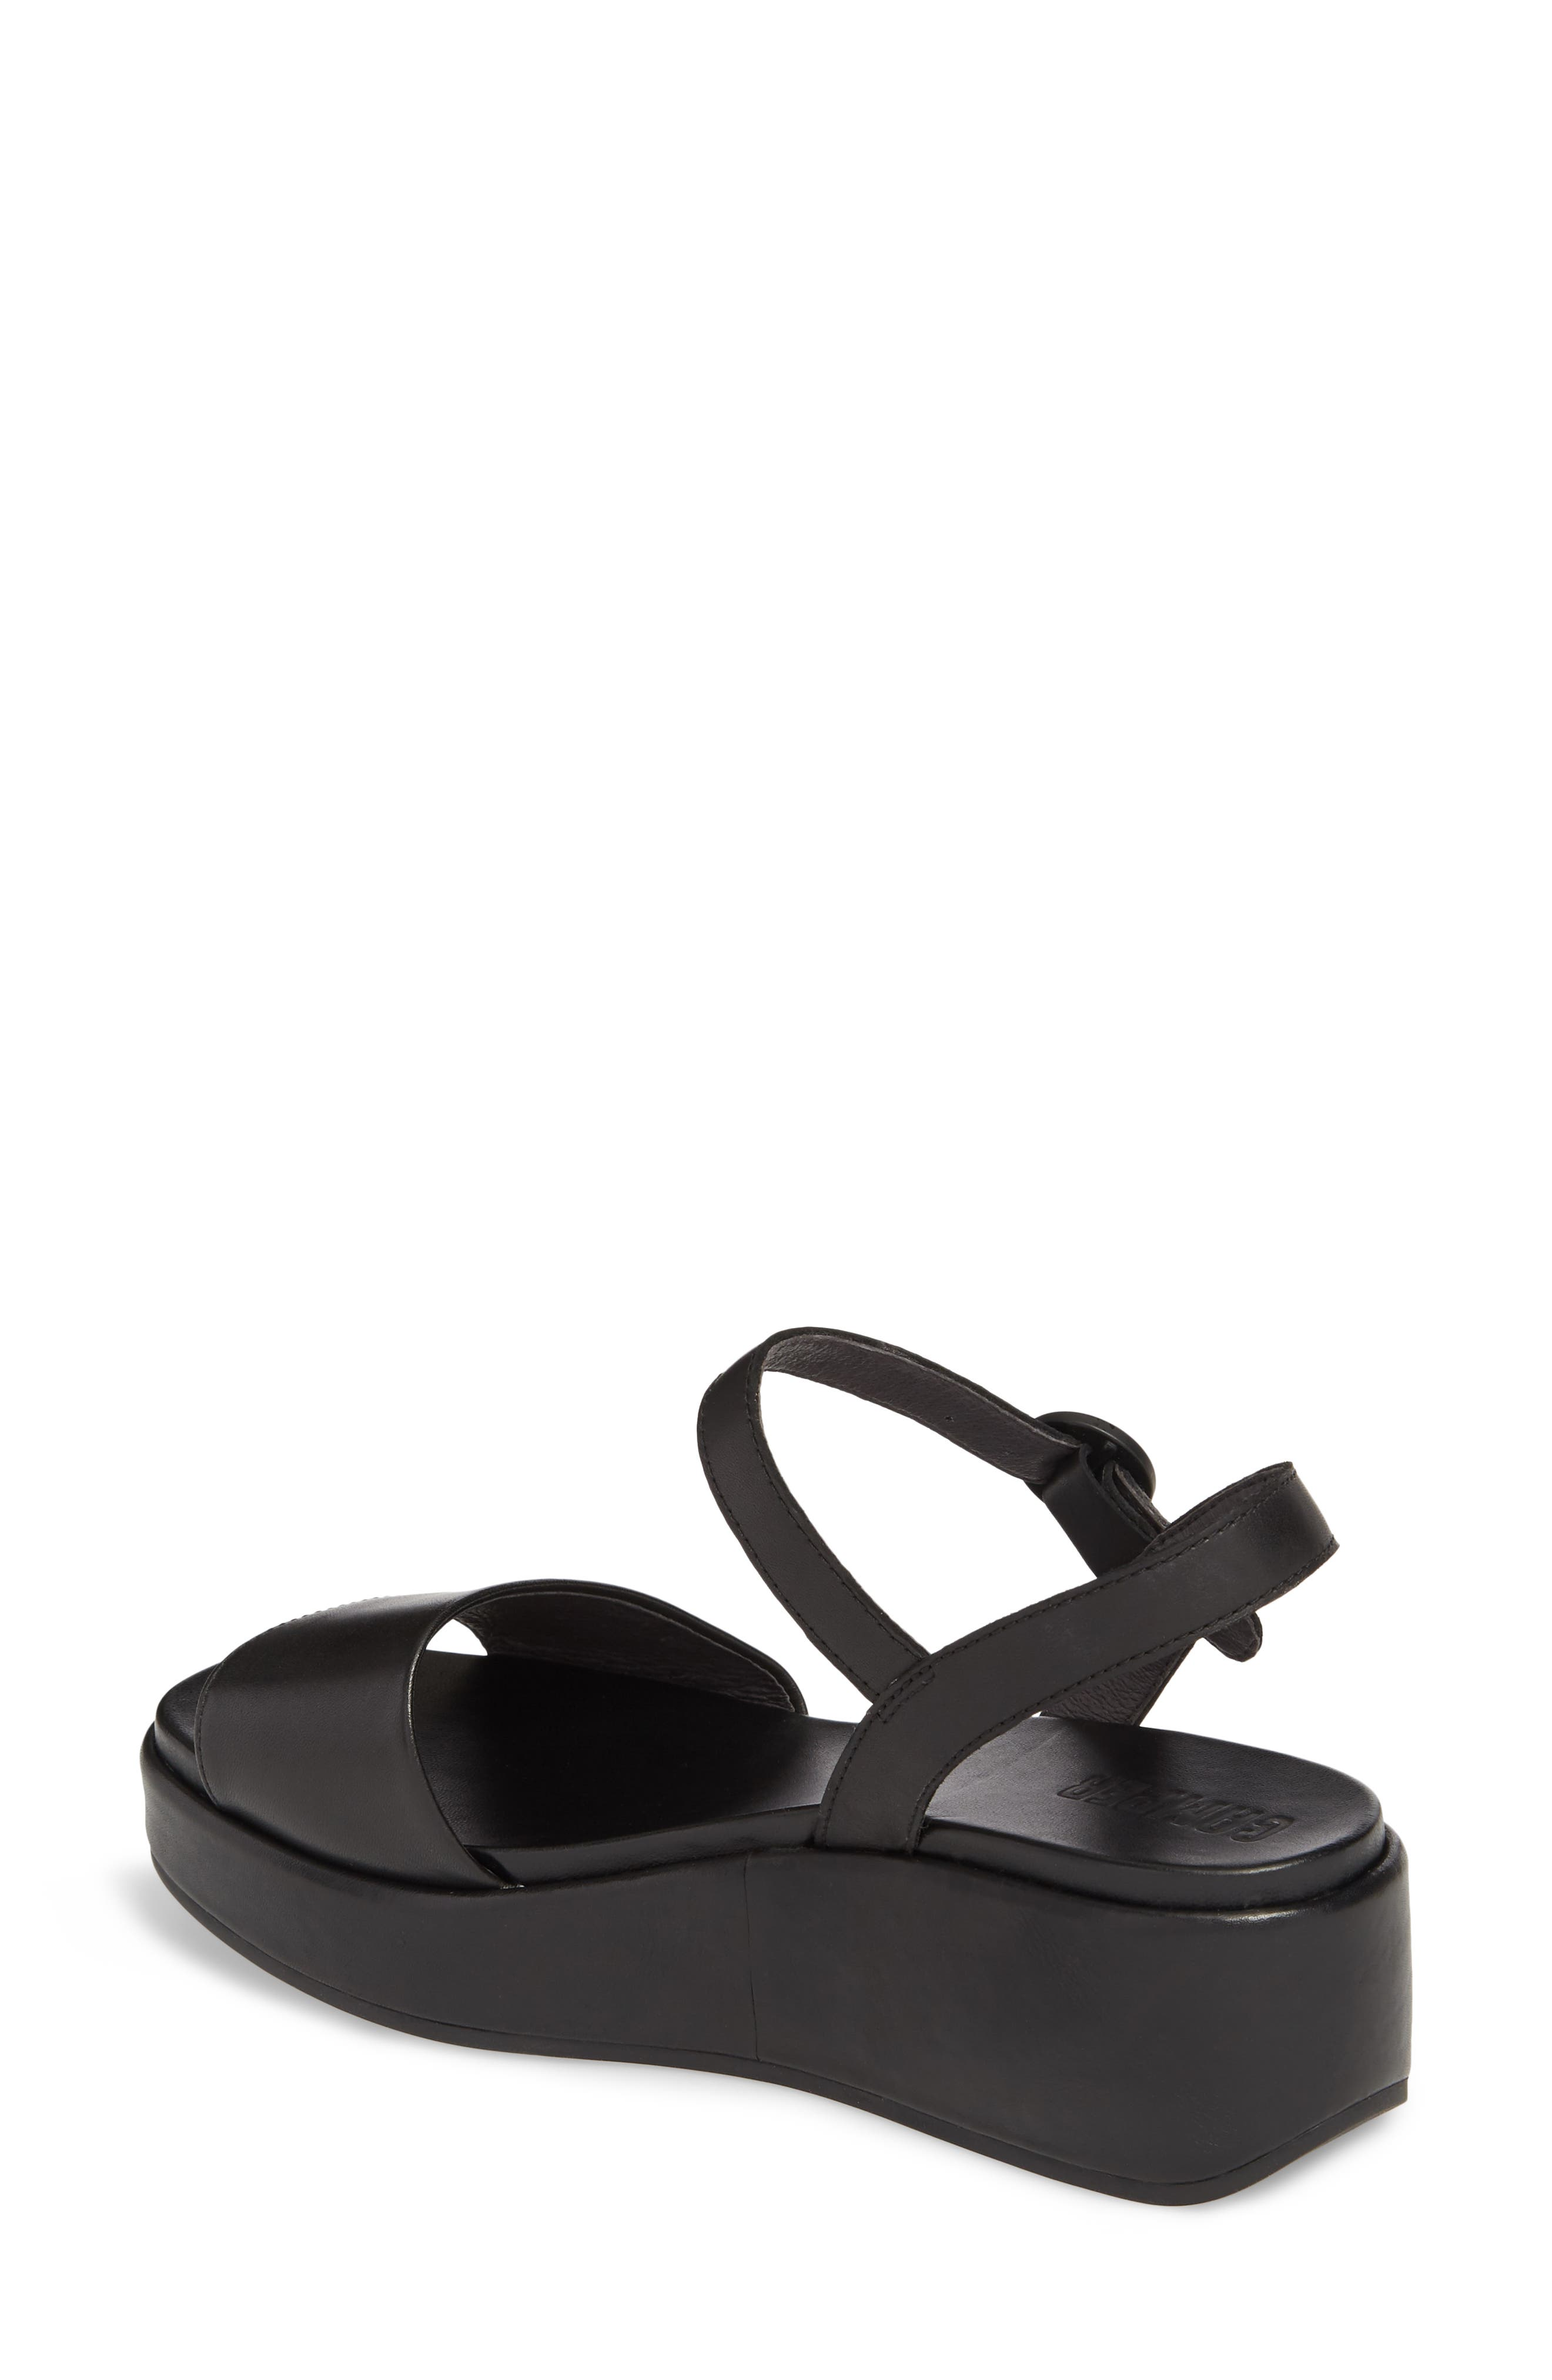 Misia Platform Wedge Sandal,                             Alternate thumbnail 2, color,                             001